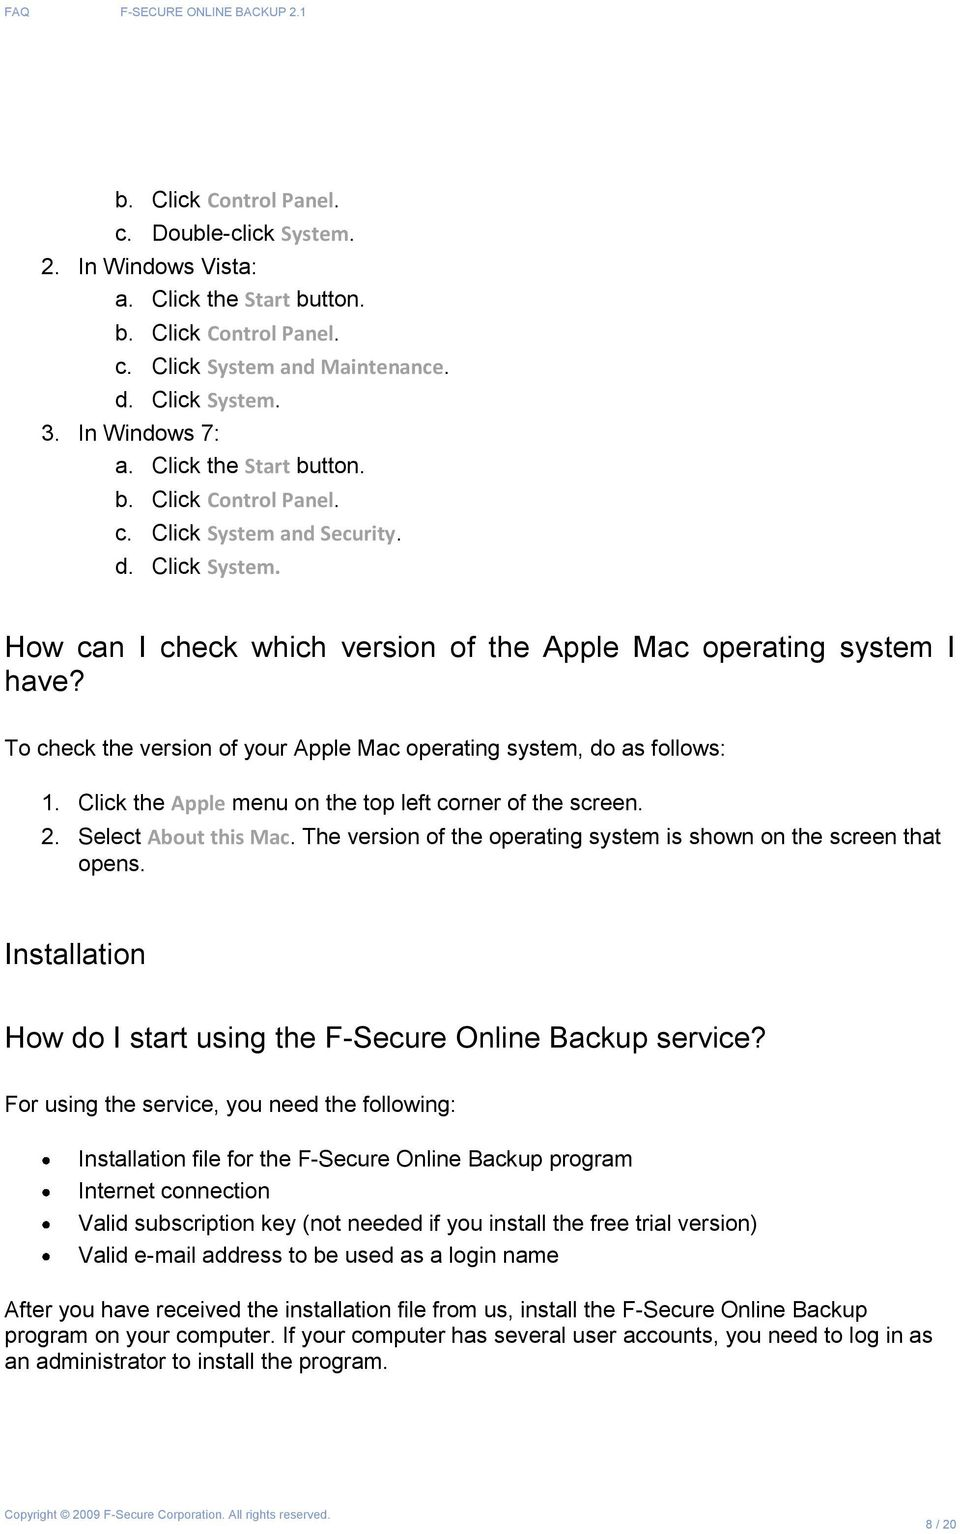 To check the version of your Apple Mac operating system, do as follows: 1. Click the Apple menu on the top left corner of the screen. 2. Select About this Mac.